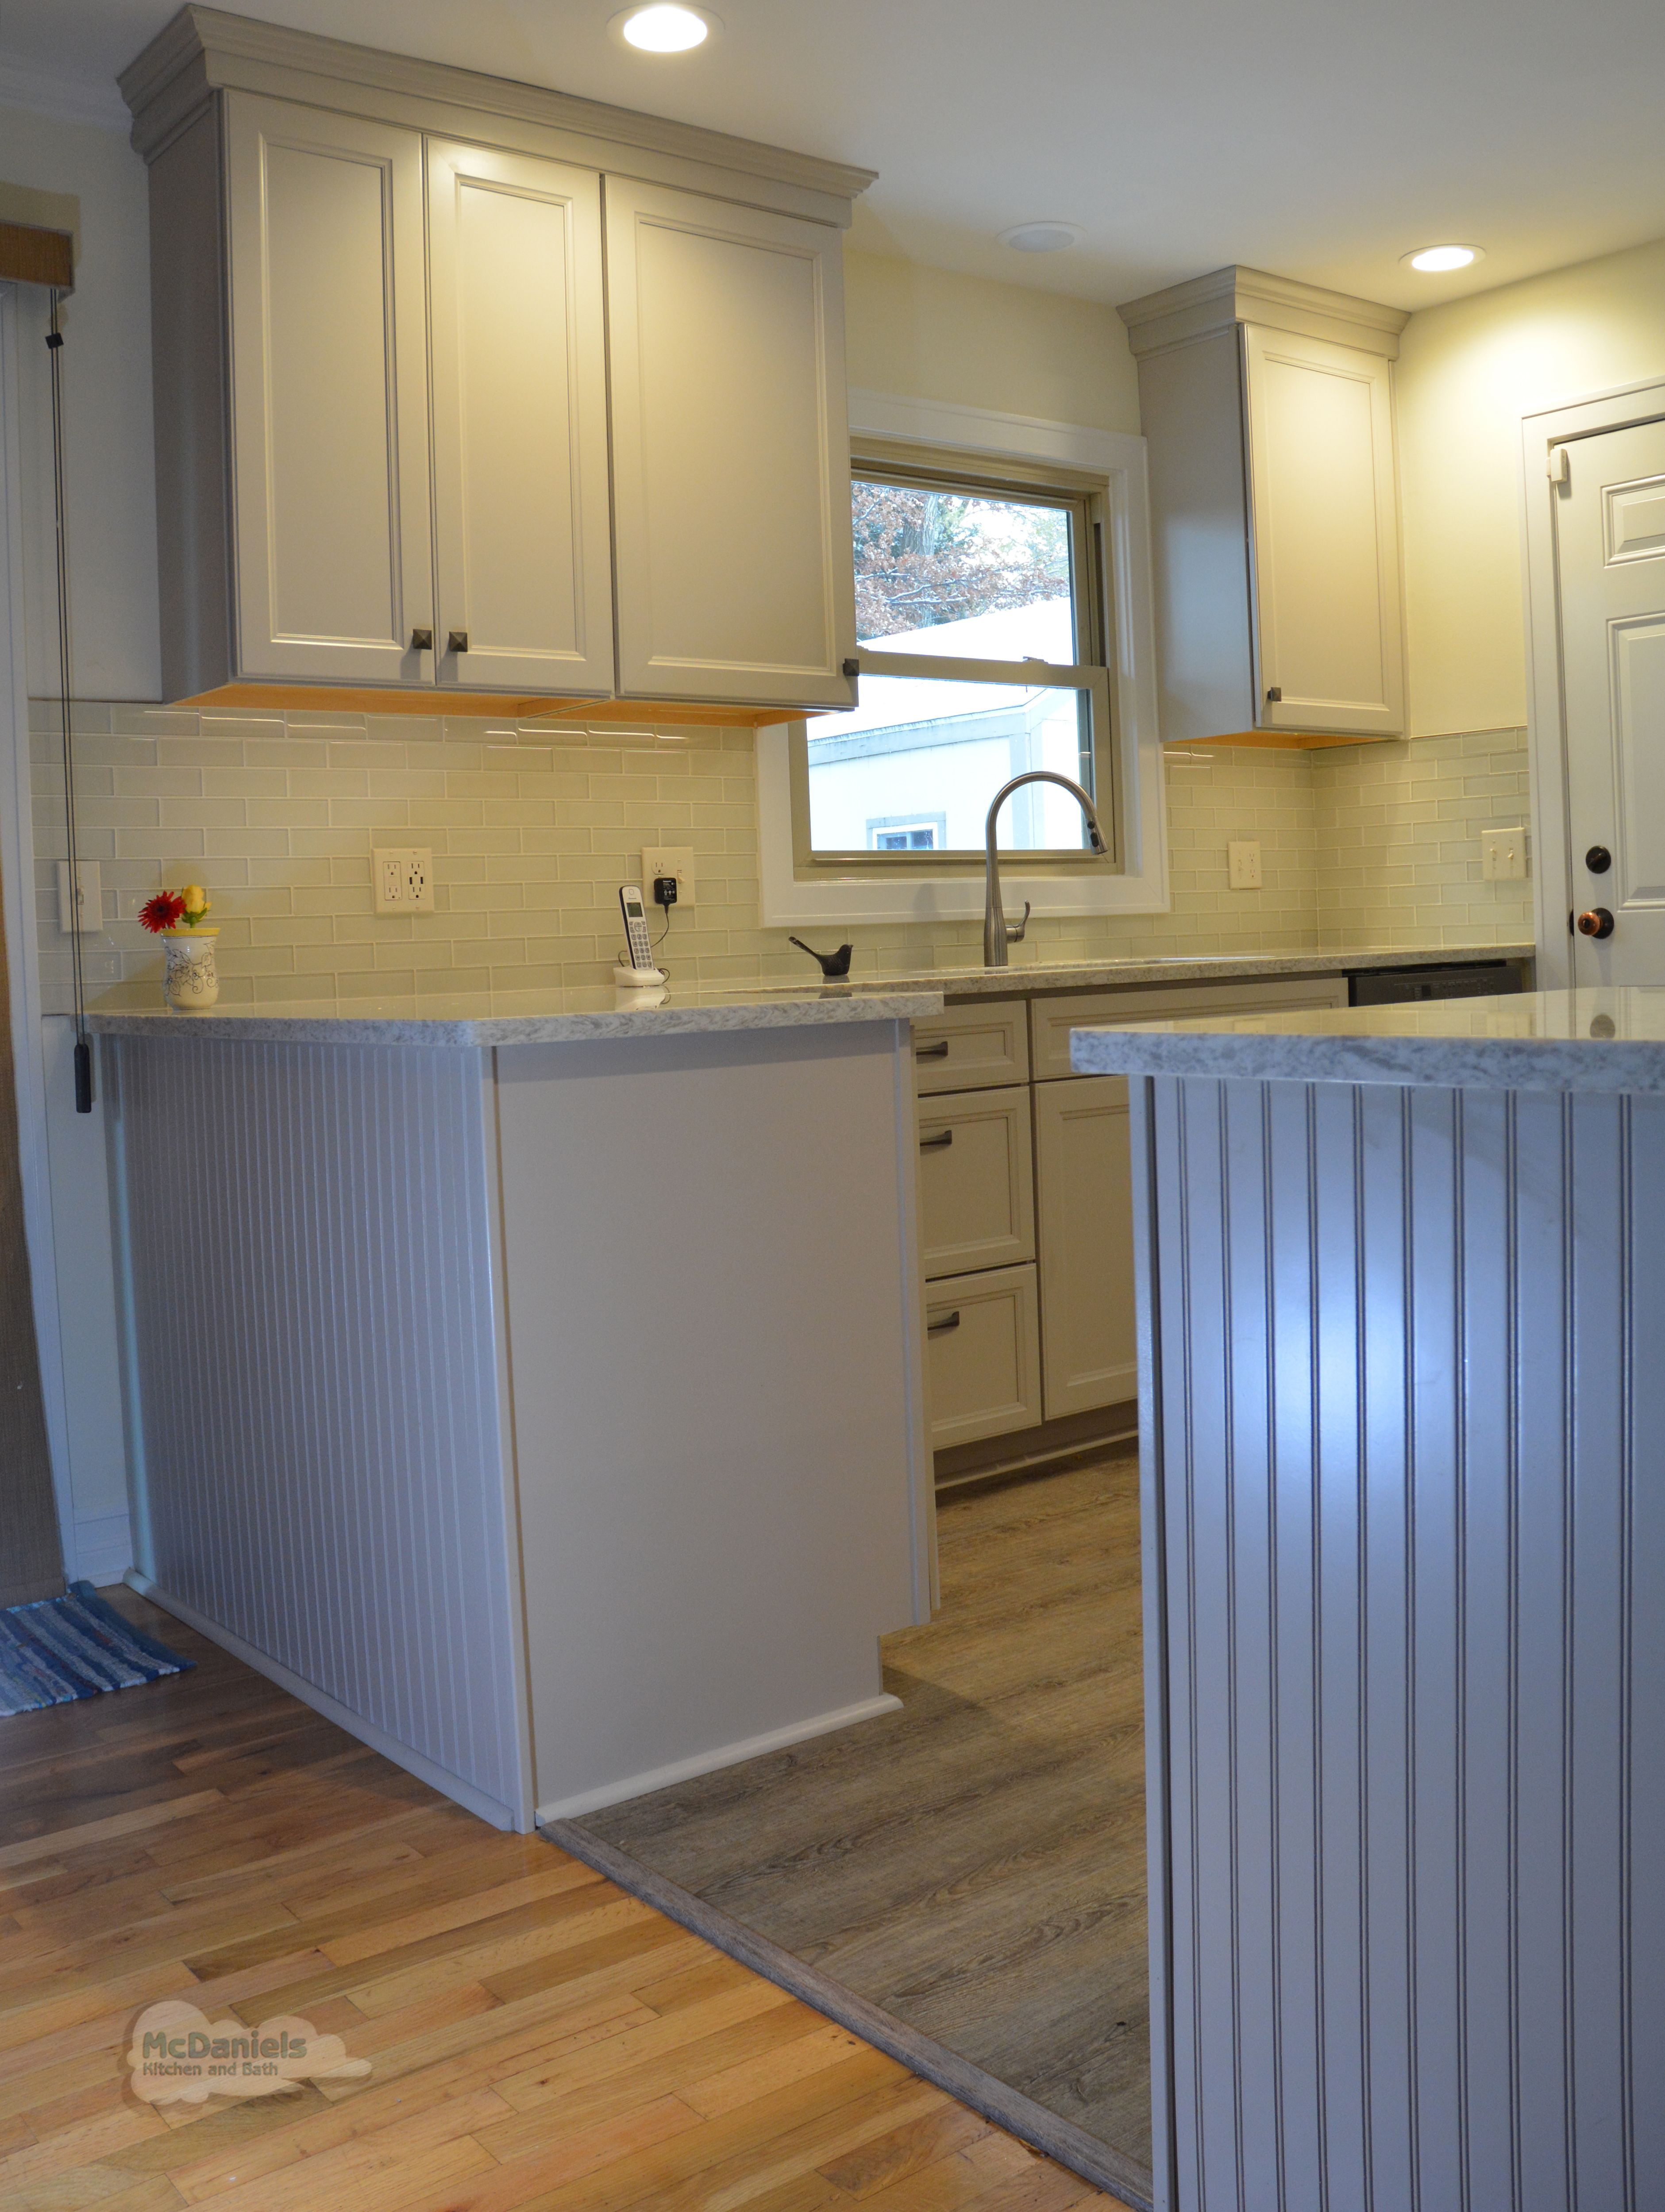 This Kitchen Design In East Lansing Proves That Your Kitchen Style Should Be Personalized T Kitchen And Bath Remodeling Kitchen Style Laminate Kitchen Cabinets